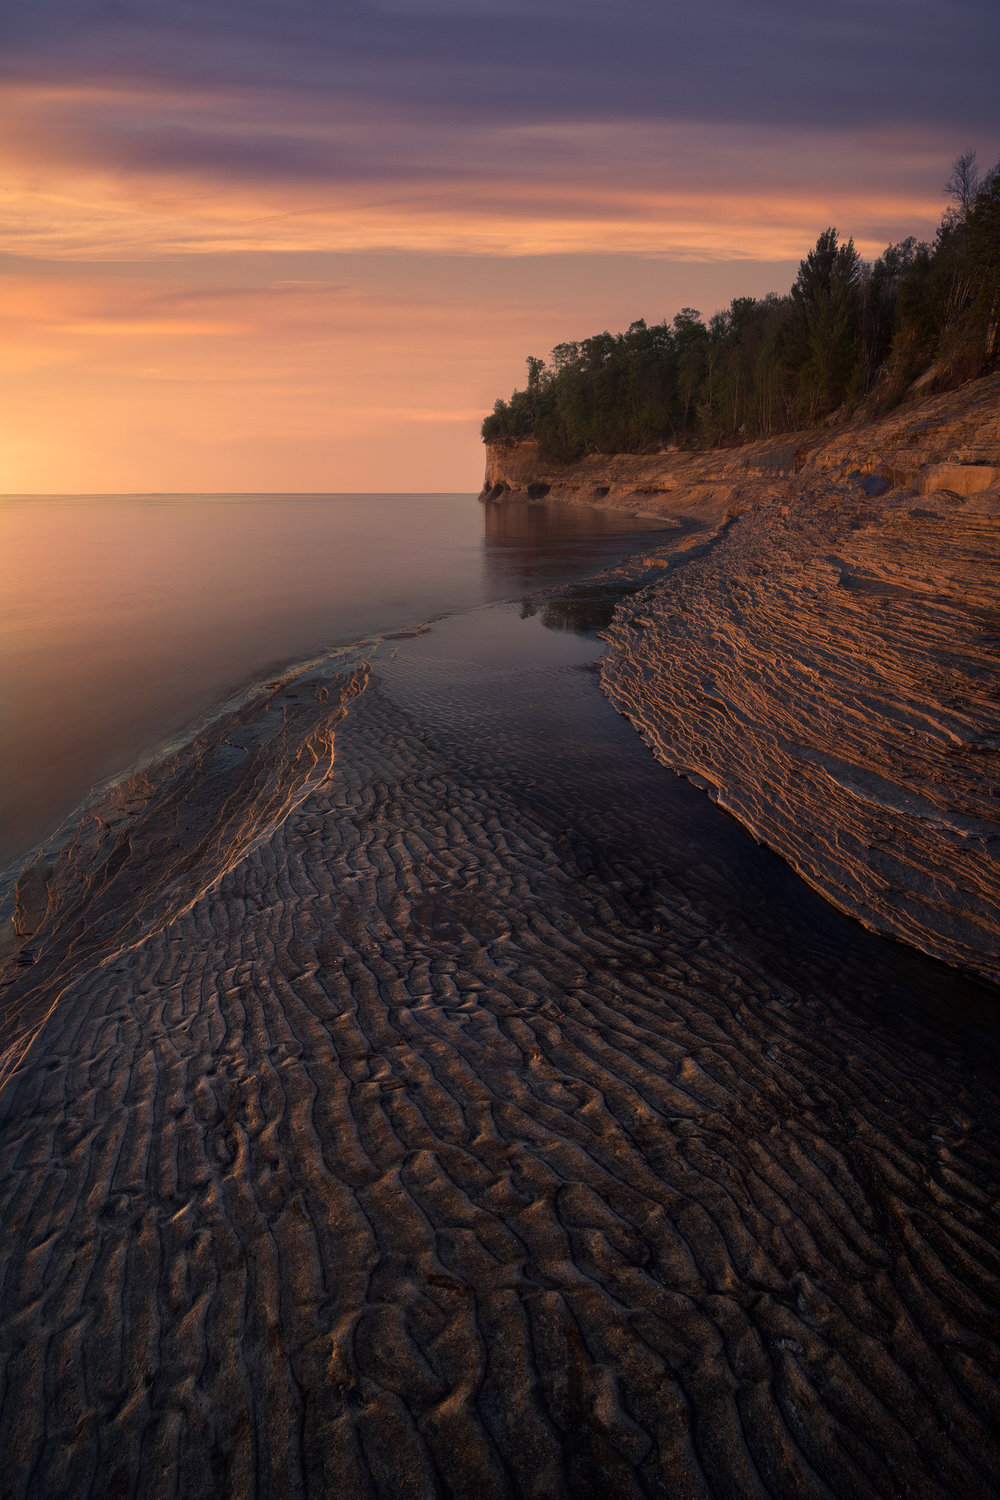 """Jurassic Coast""     Irix 11mm, Pictured Rocks National Lakeshore 2018"